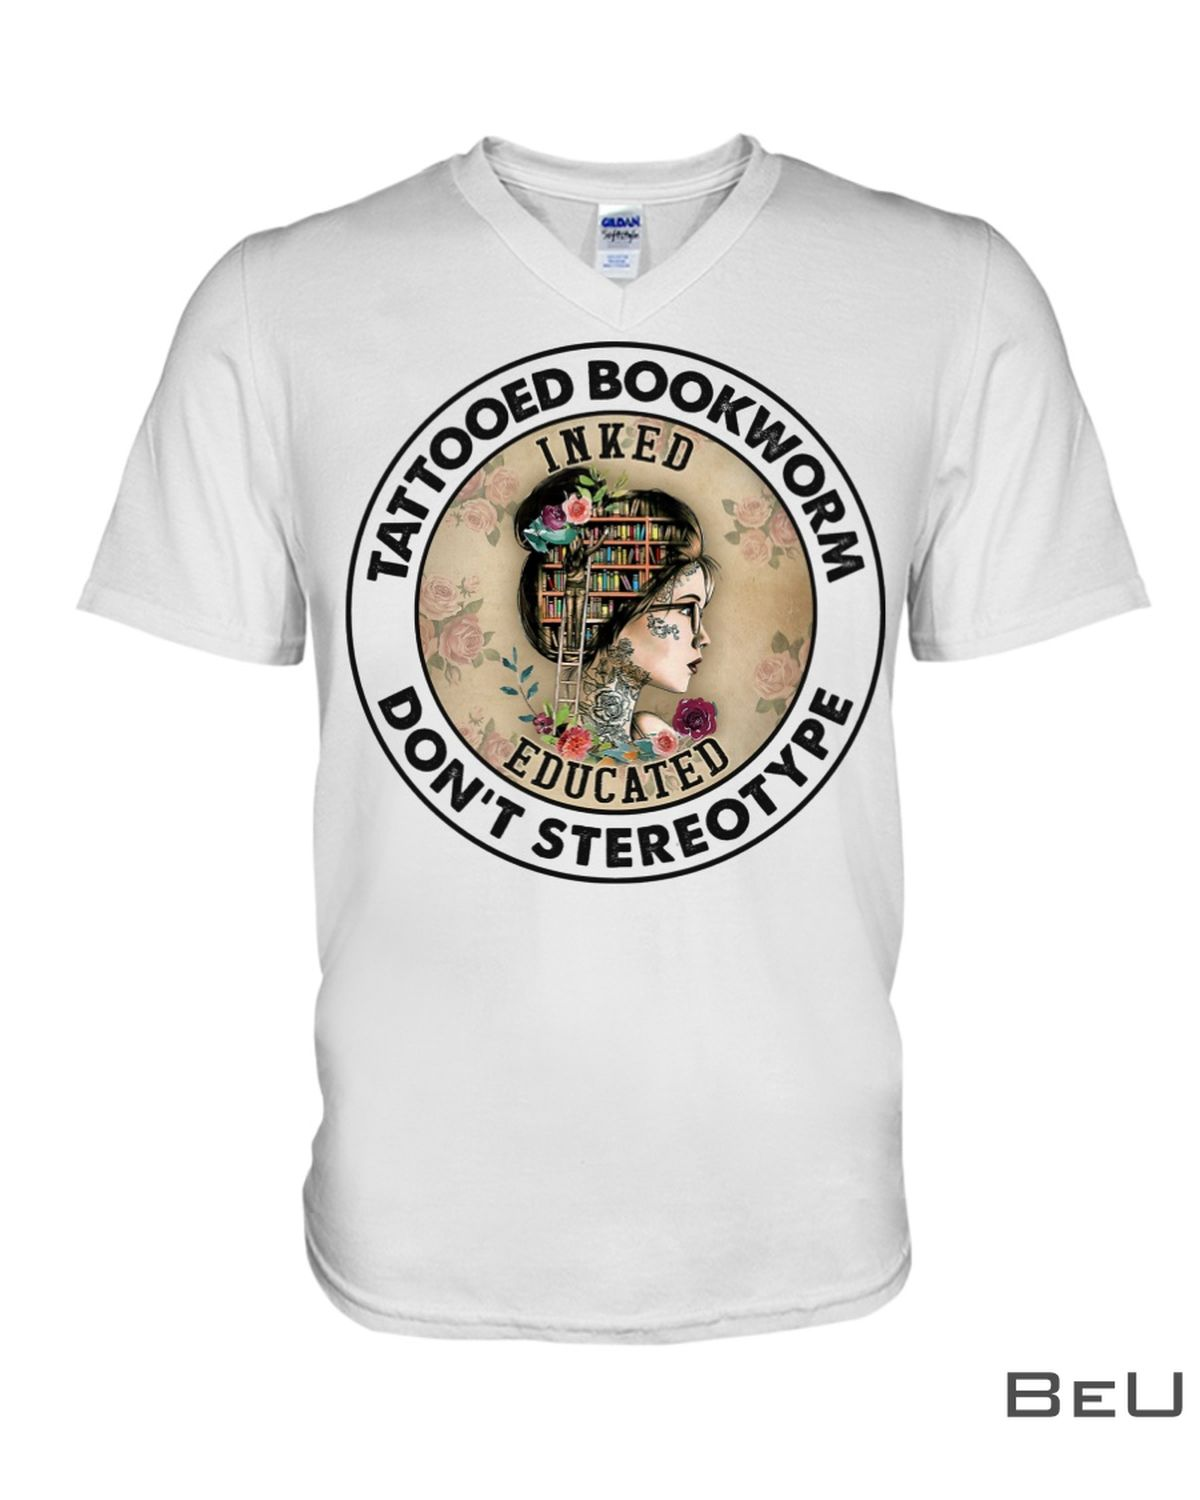 Tattooed Bookworm Don't Stereotype Shirtx